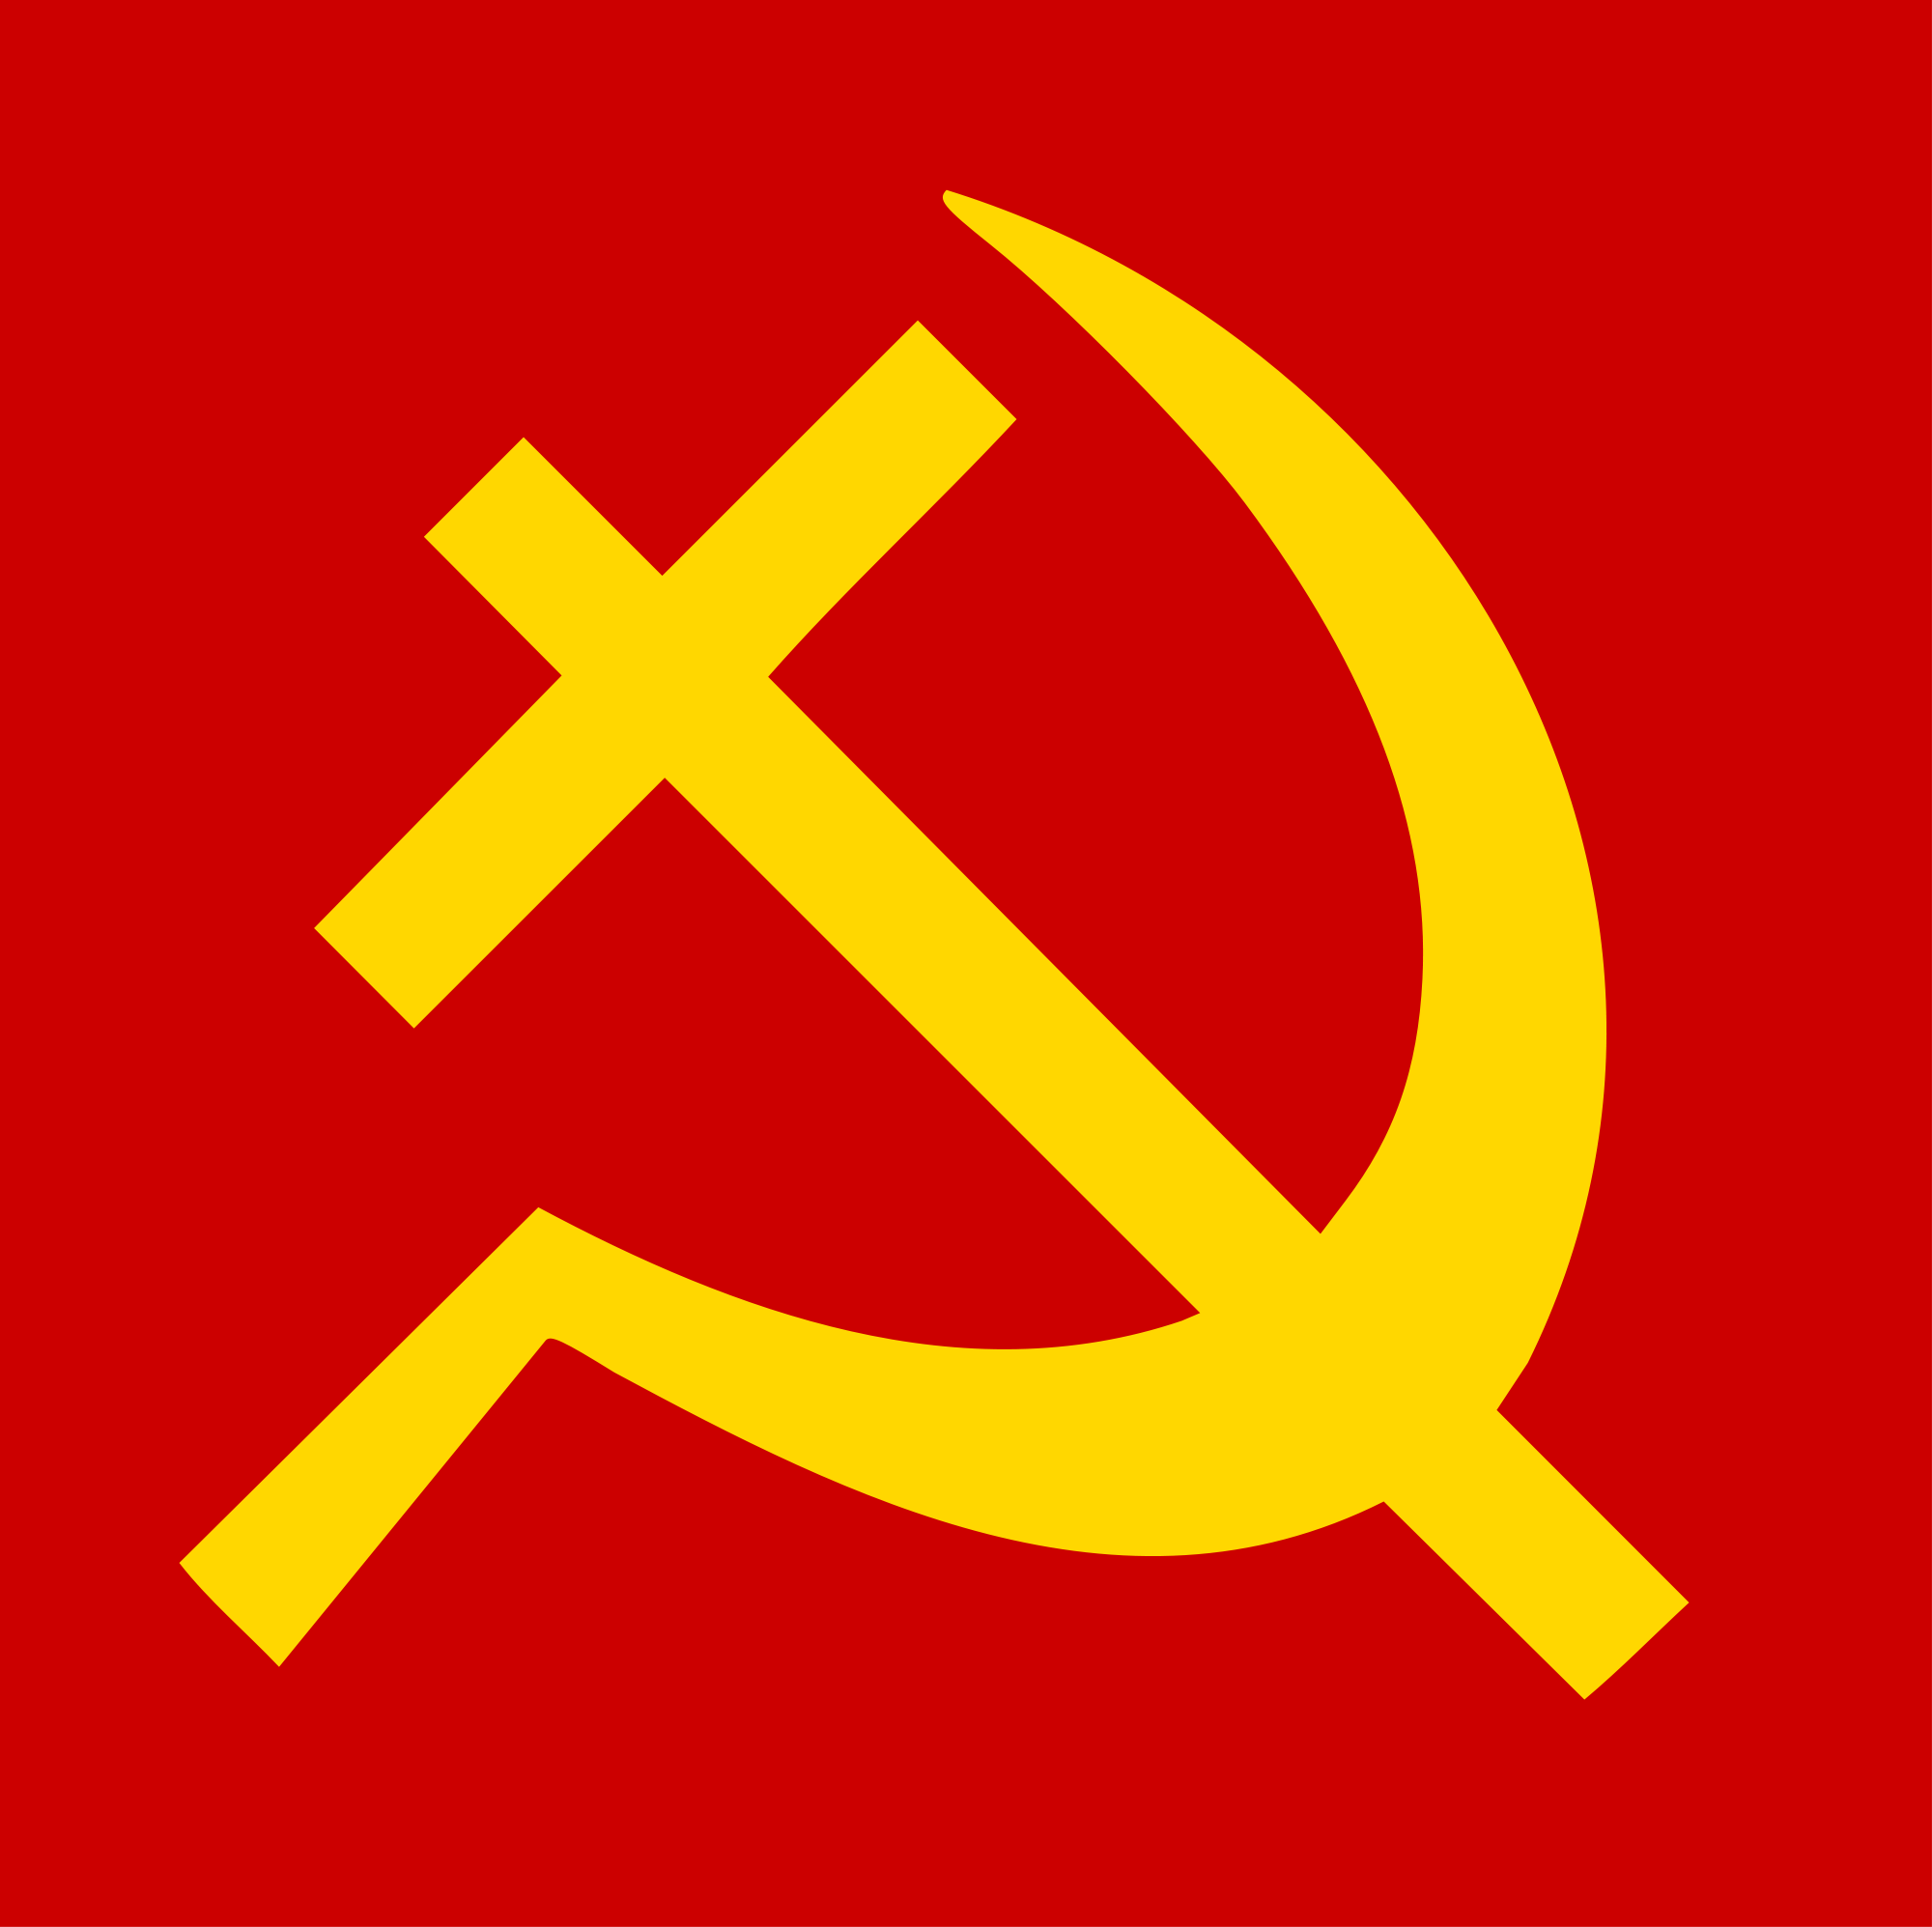 This Is The Symbol For Russia The Motherland As It Is Called Is